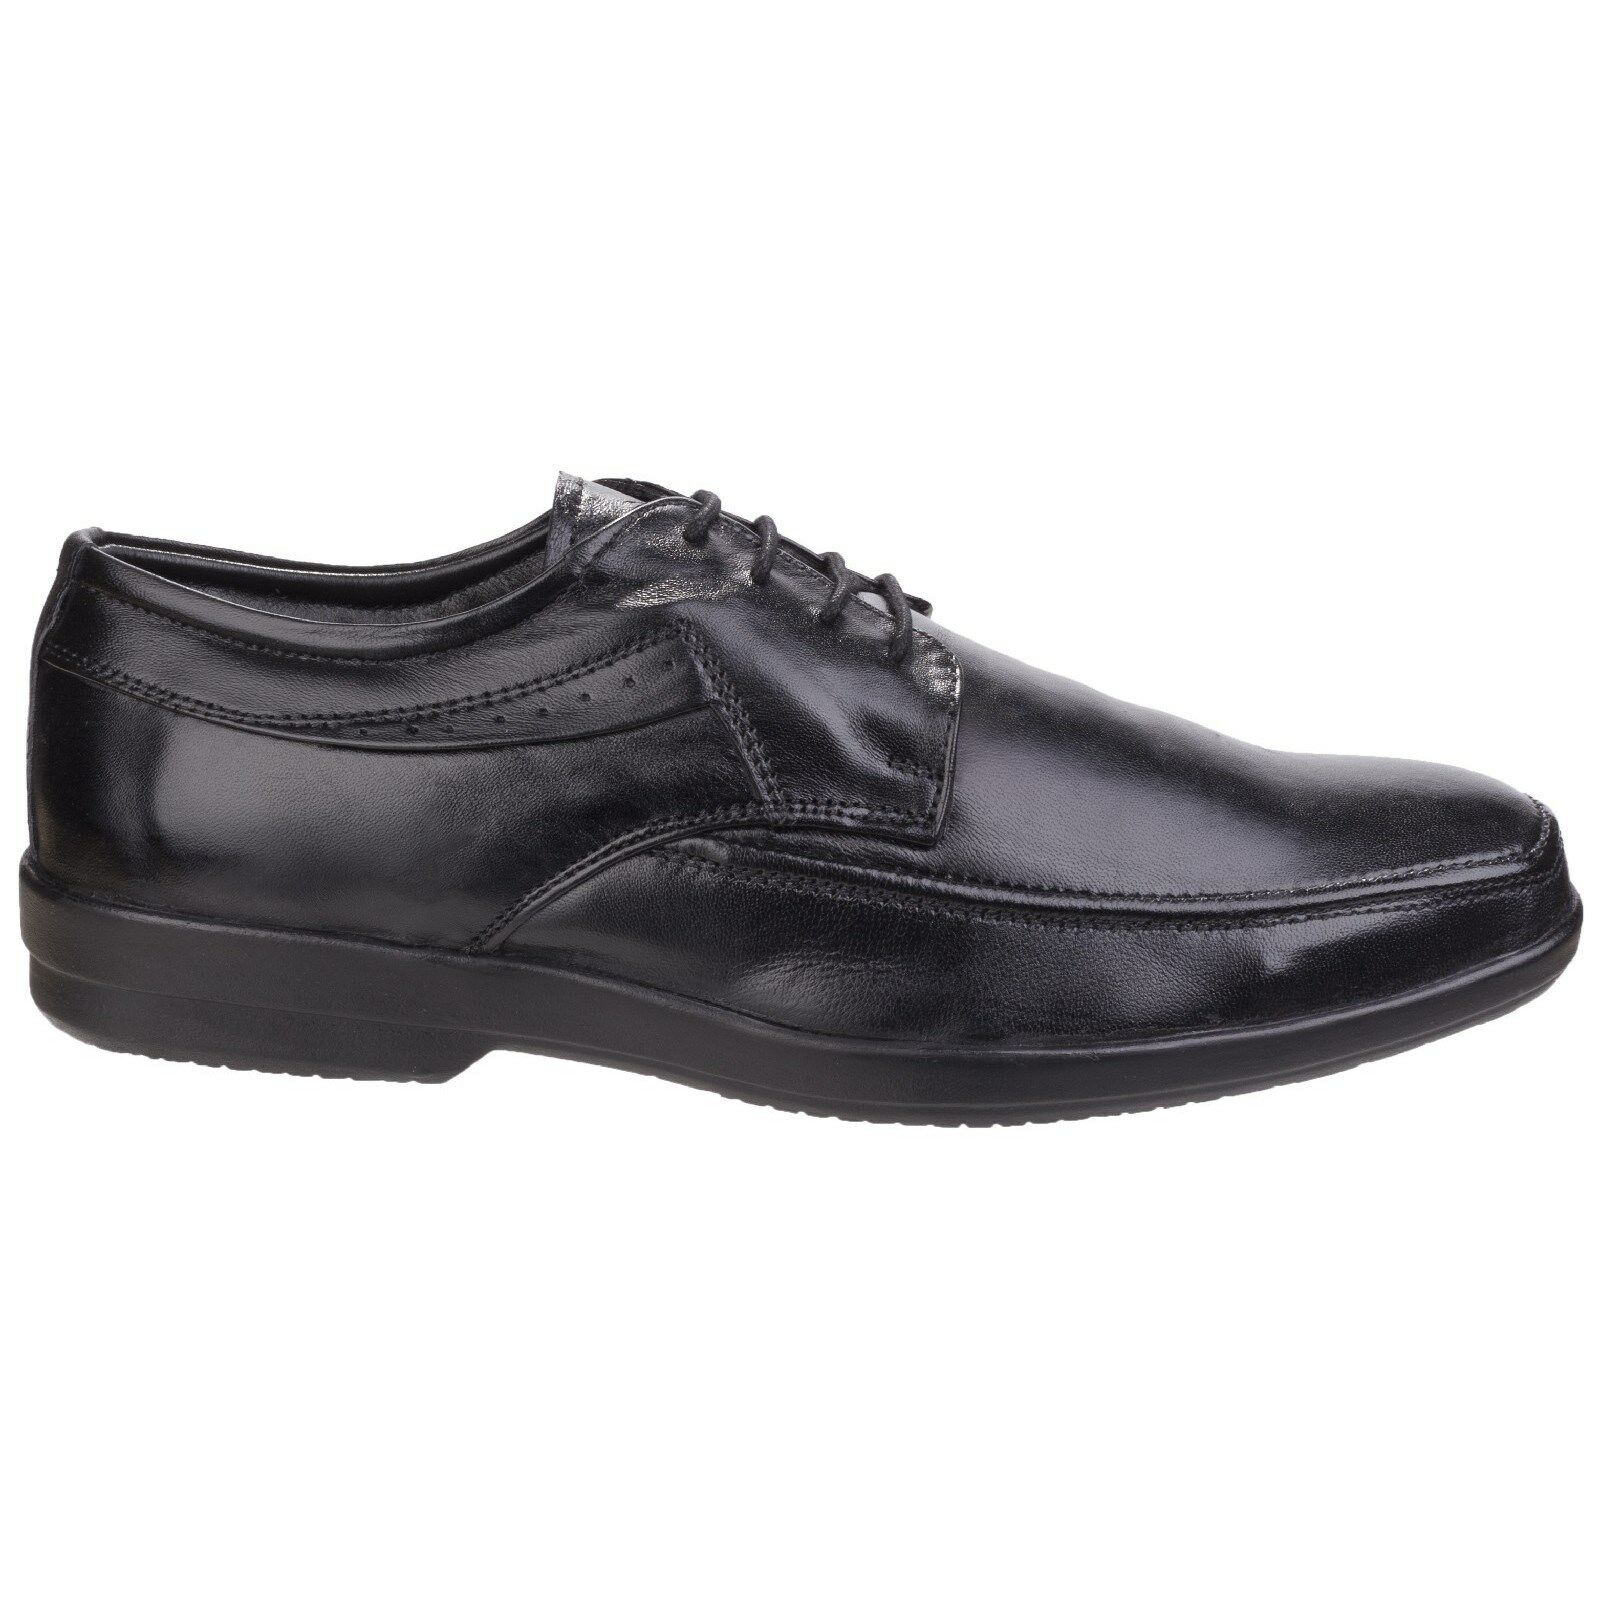 Fleet & Foster Dave 100% Leather Lace Up Oxford Mens shoes Formal uk